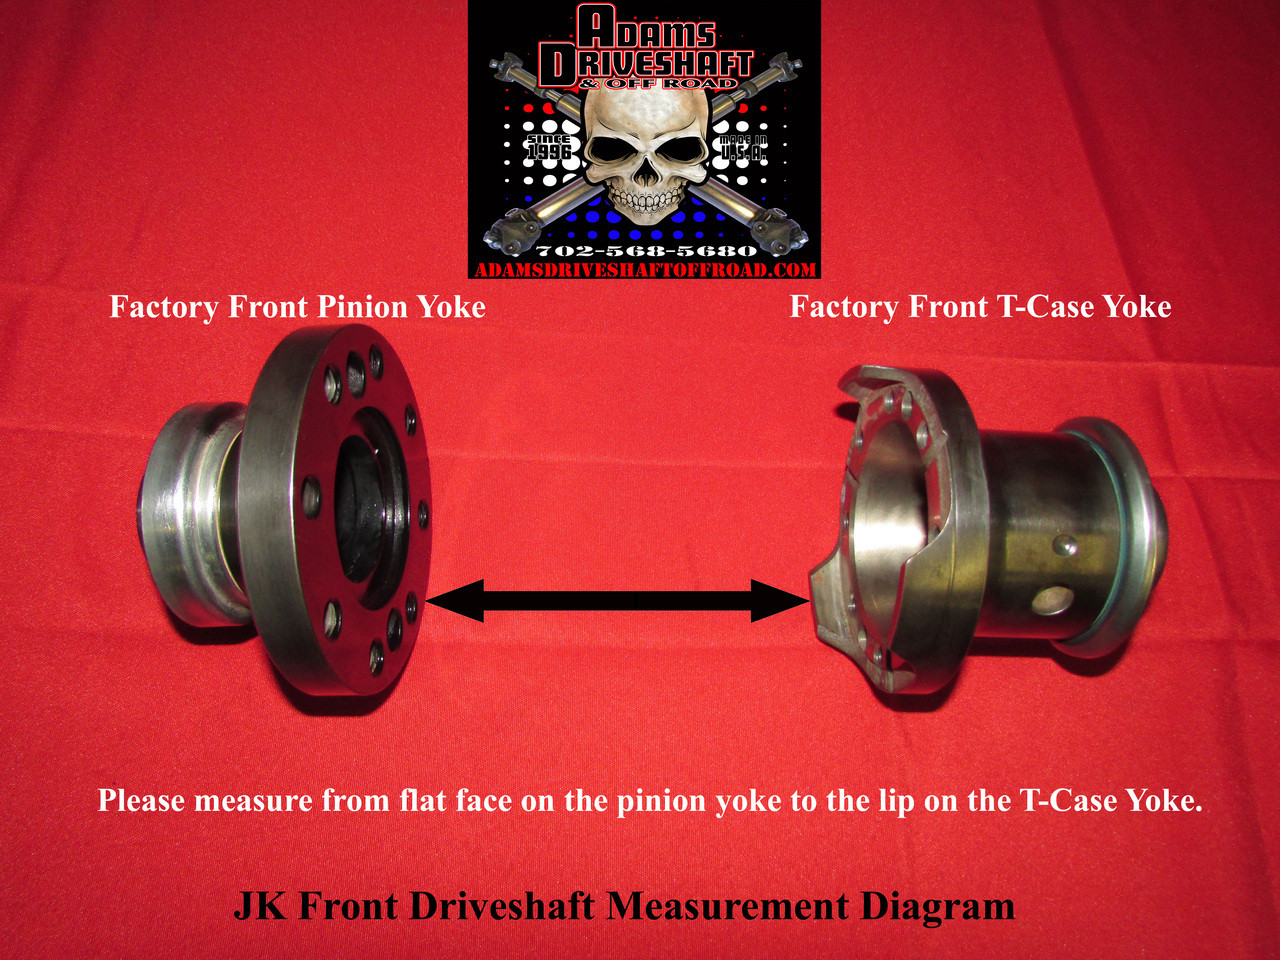 Actual drive shaft measurement required upon placing order.